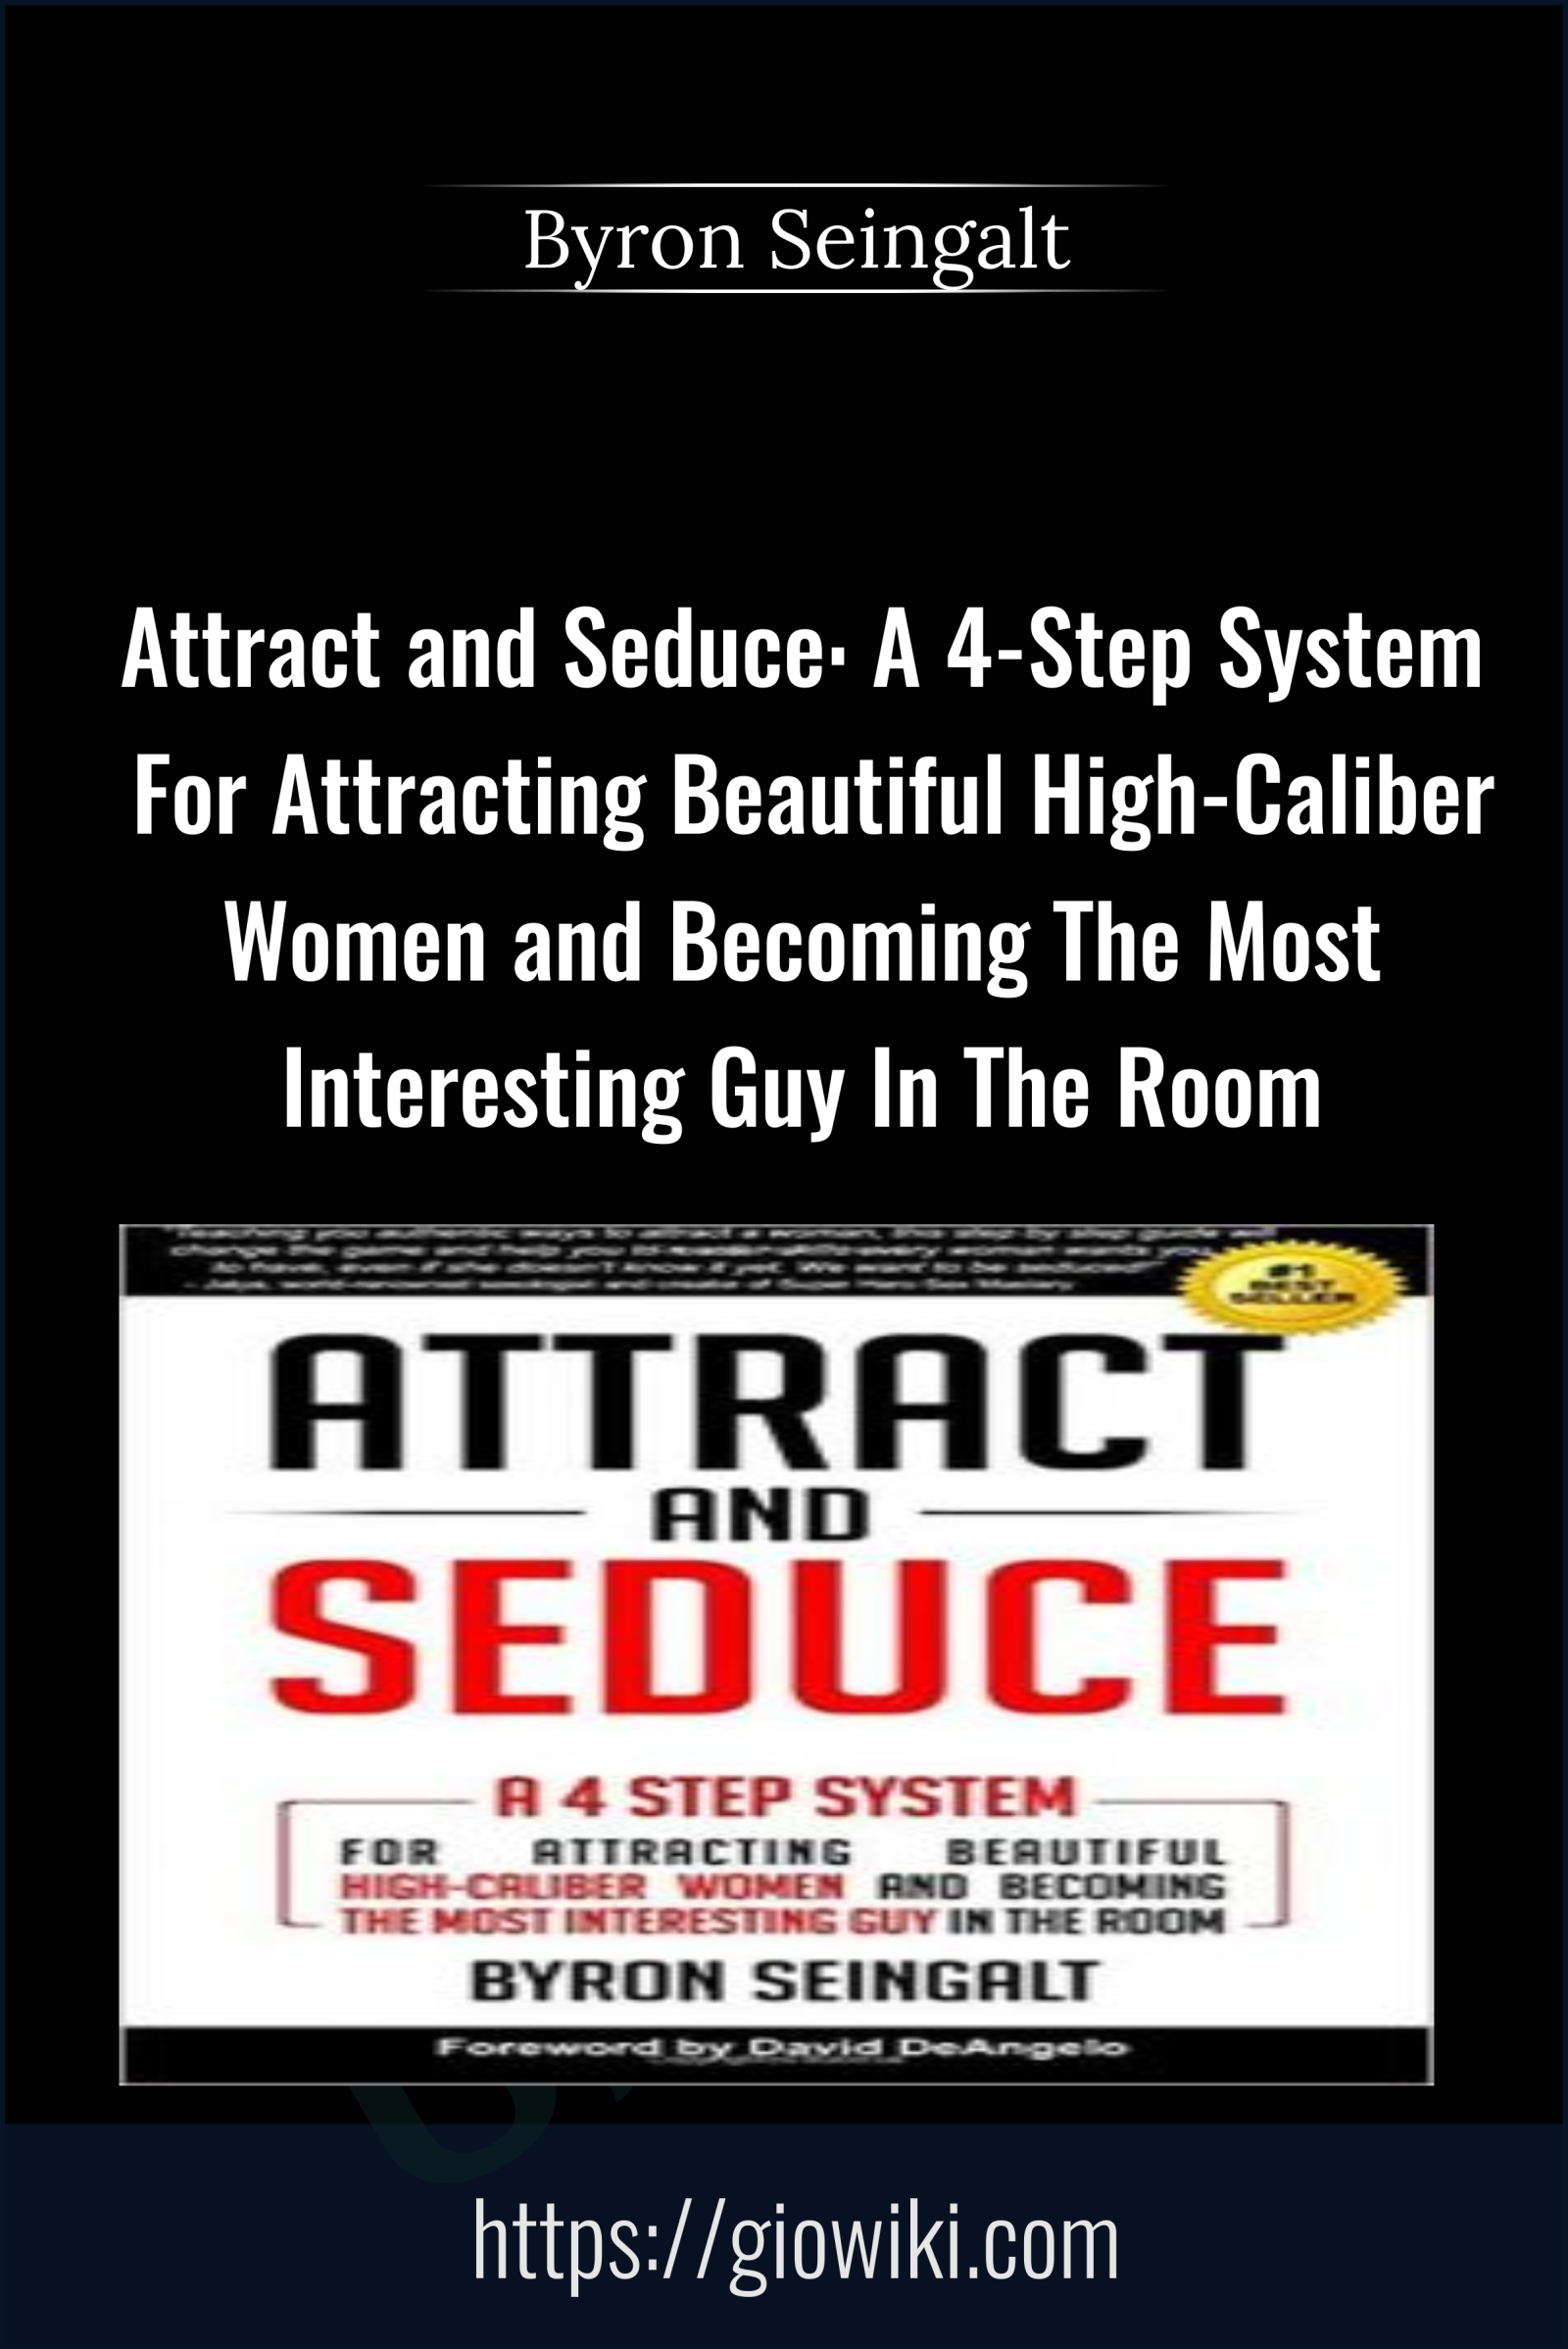 Attract and Seduce: A 4-Step System For Attracting Beautiful High-Caliber Women and Becoming The Most Interesting Guy In The Room (Attraction and Seduction For Men and Women) - Byron Seingalt